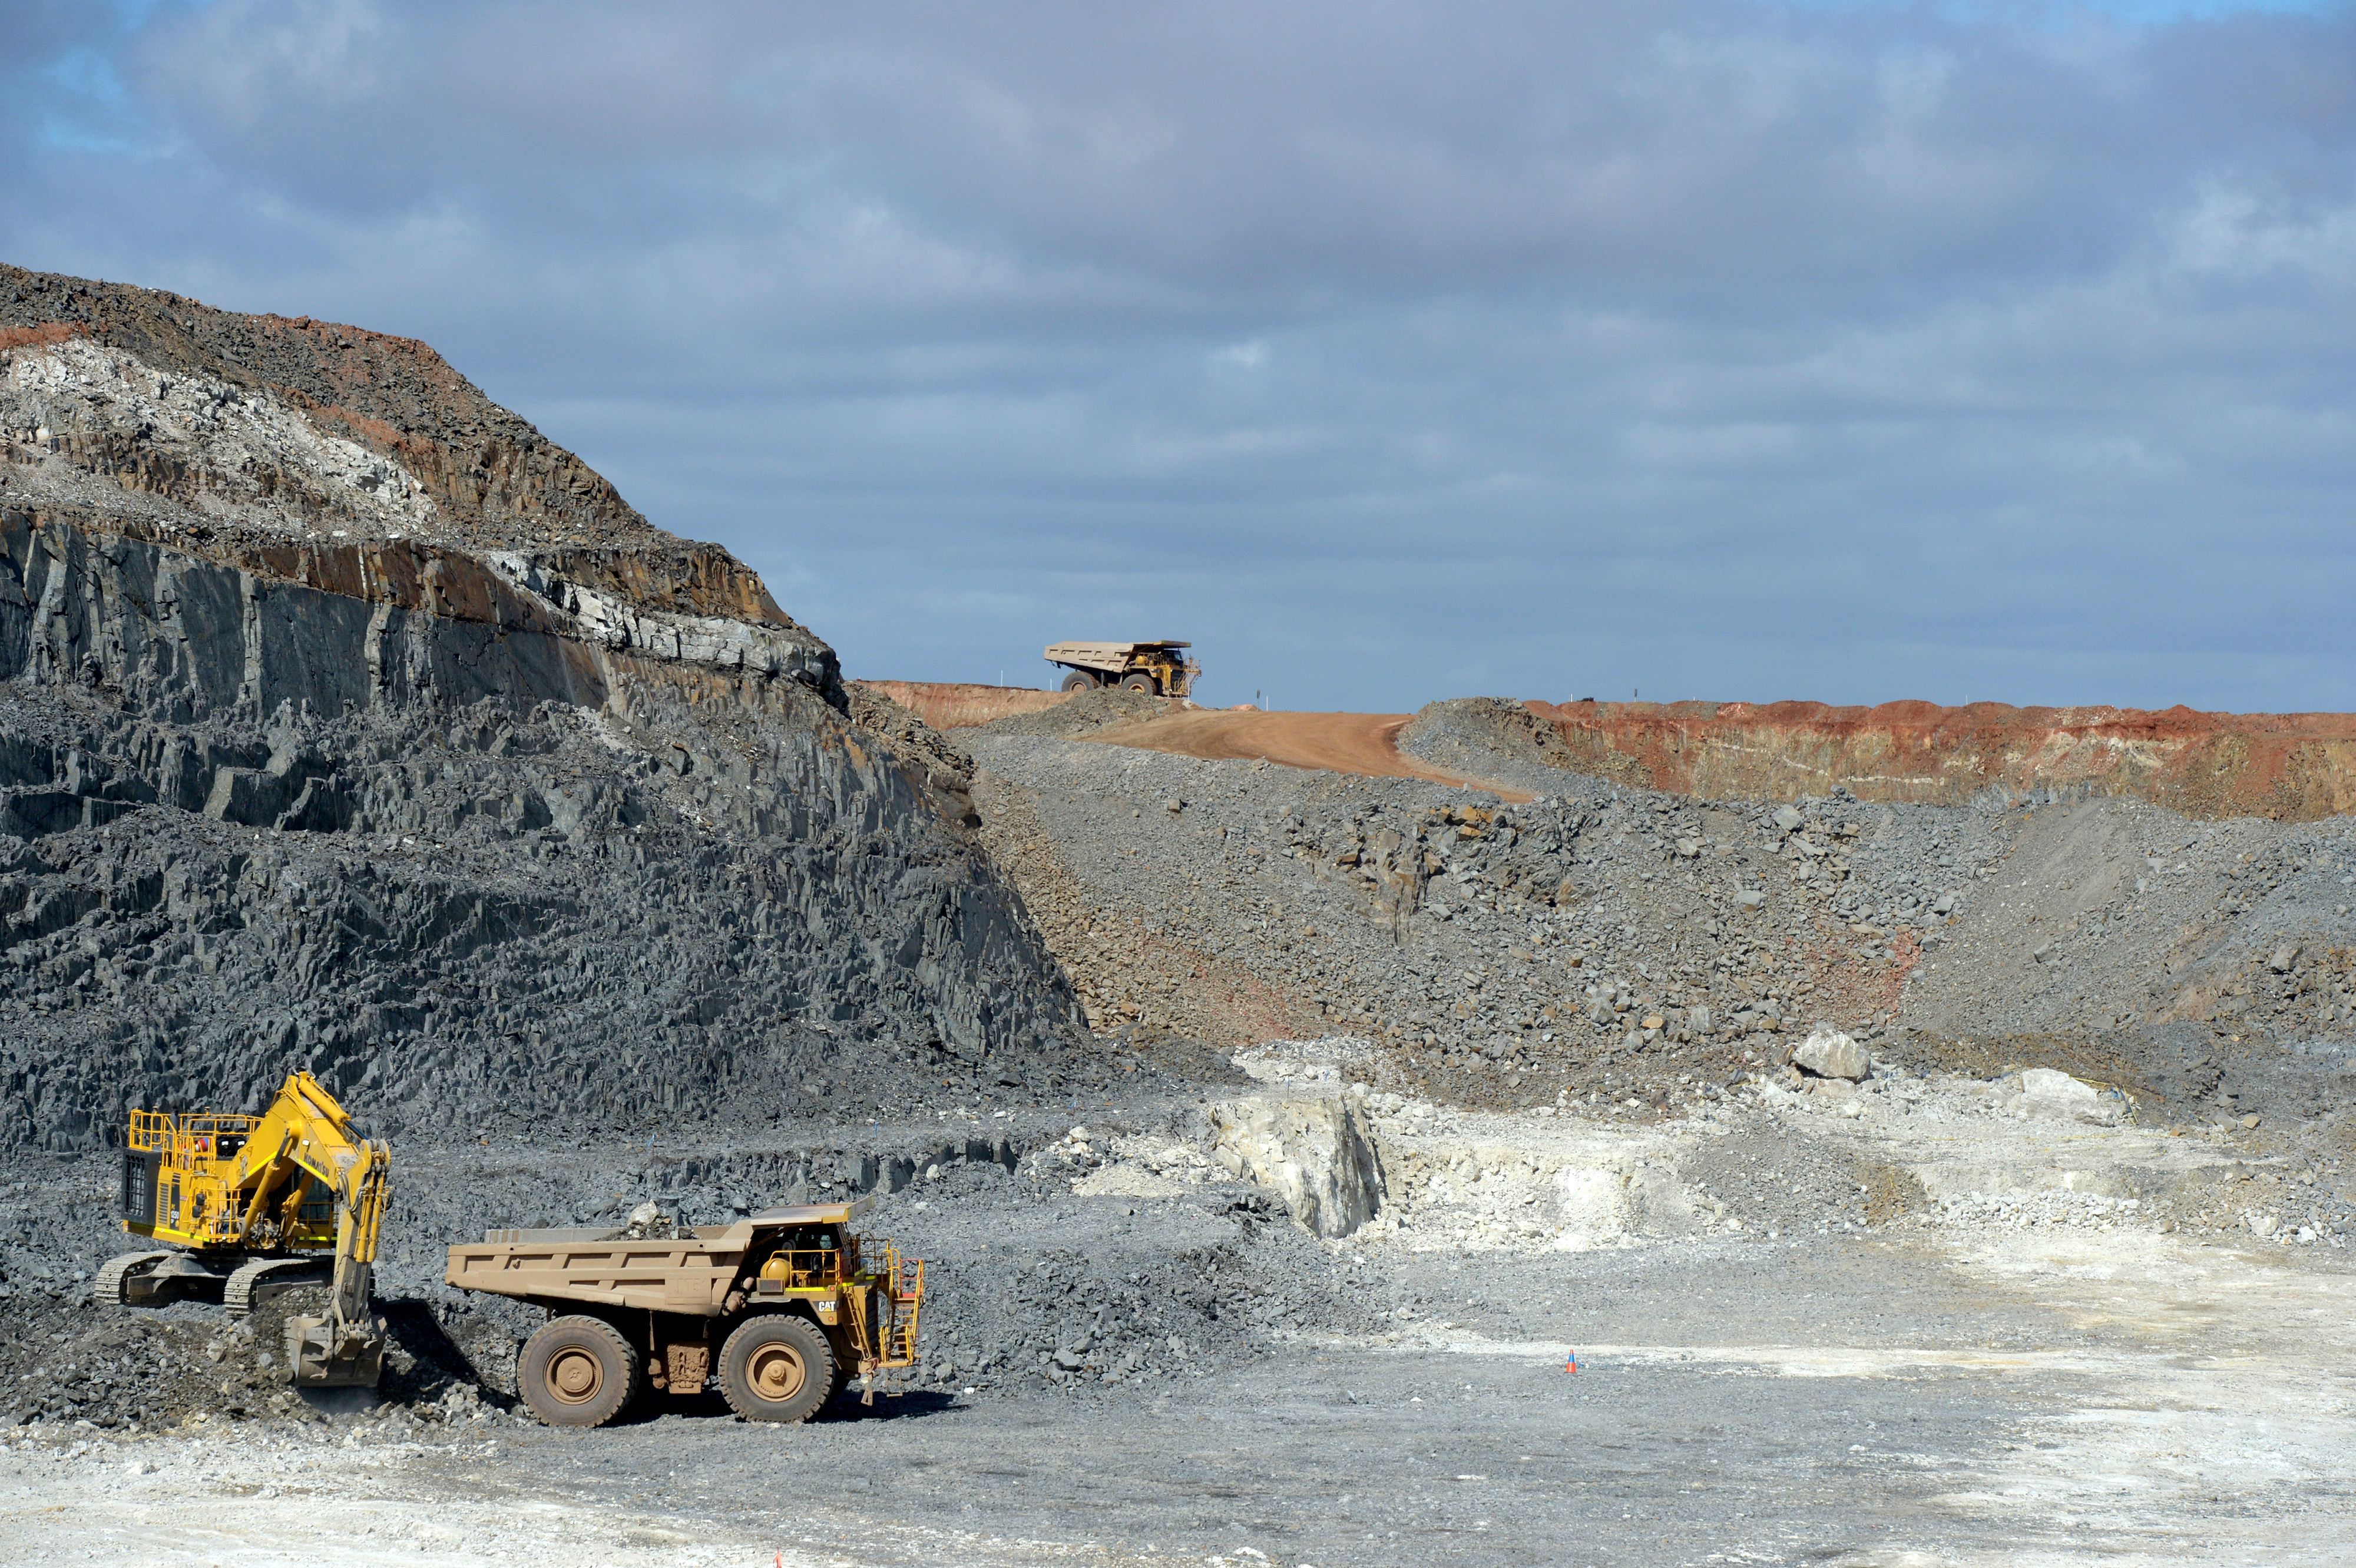 Operations At Bald Hill Lithium Mine As Lithium Sector's Newest Exporter Sees No Threat of an Oversupply